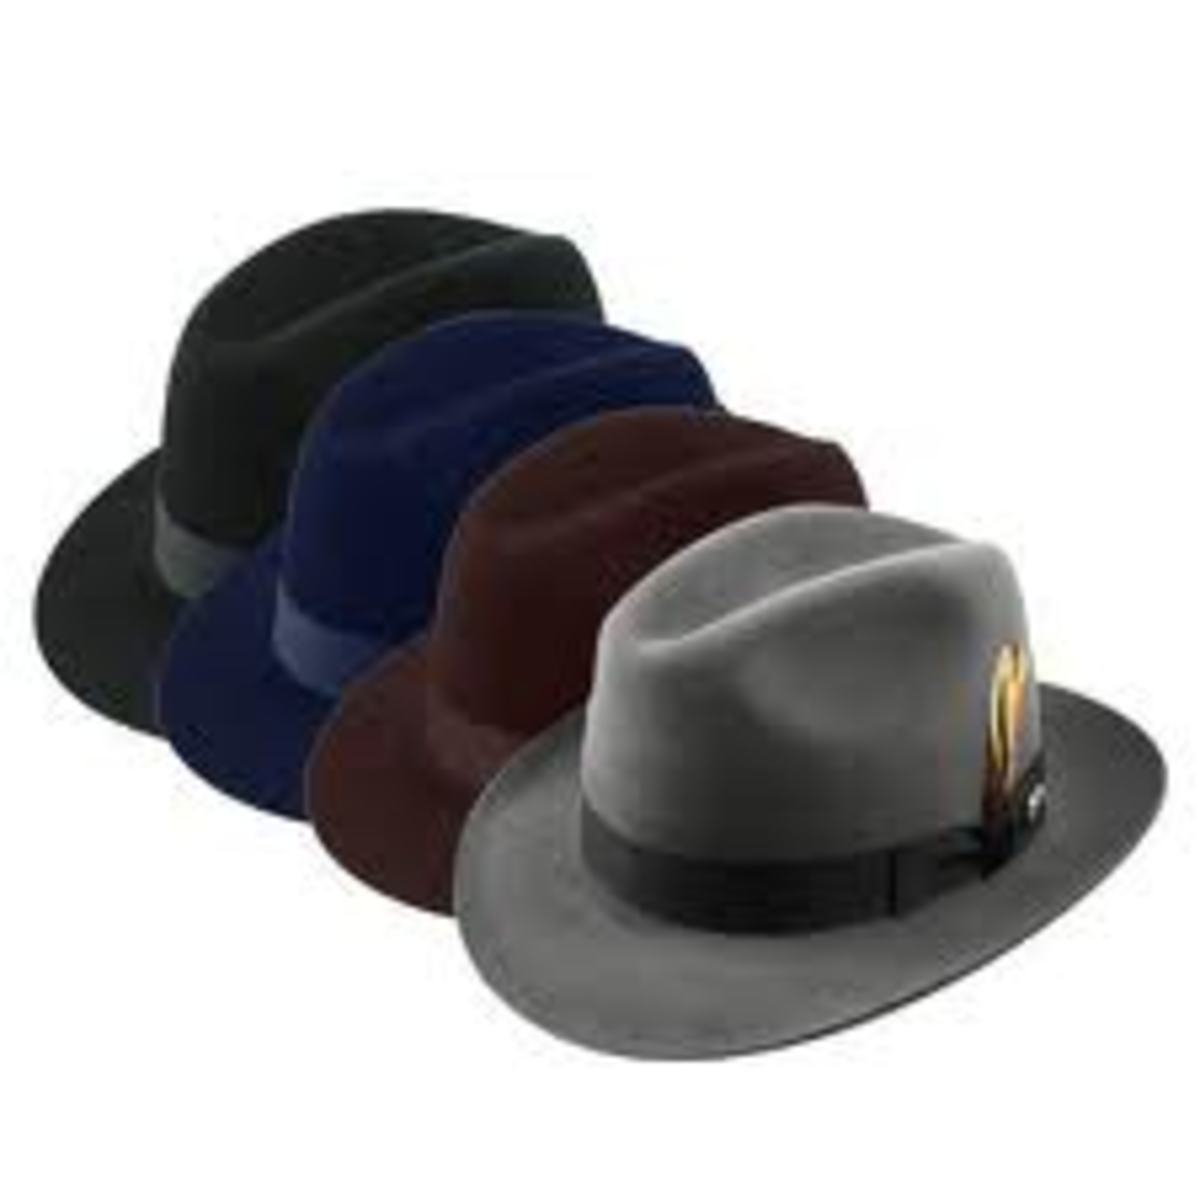 hat-styles-choose-the-one-thats-right-for-you